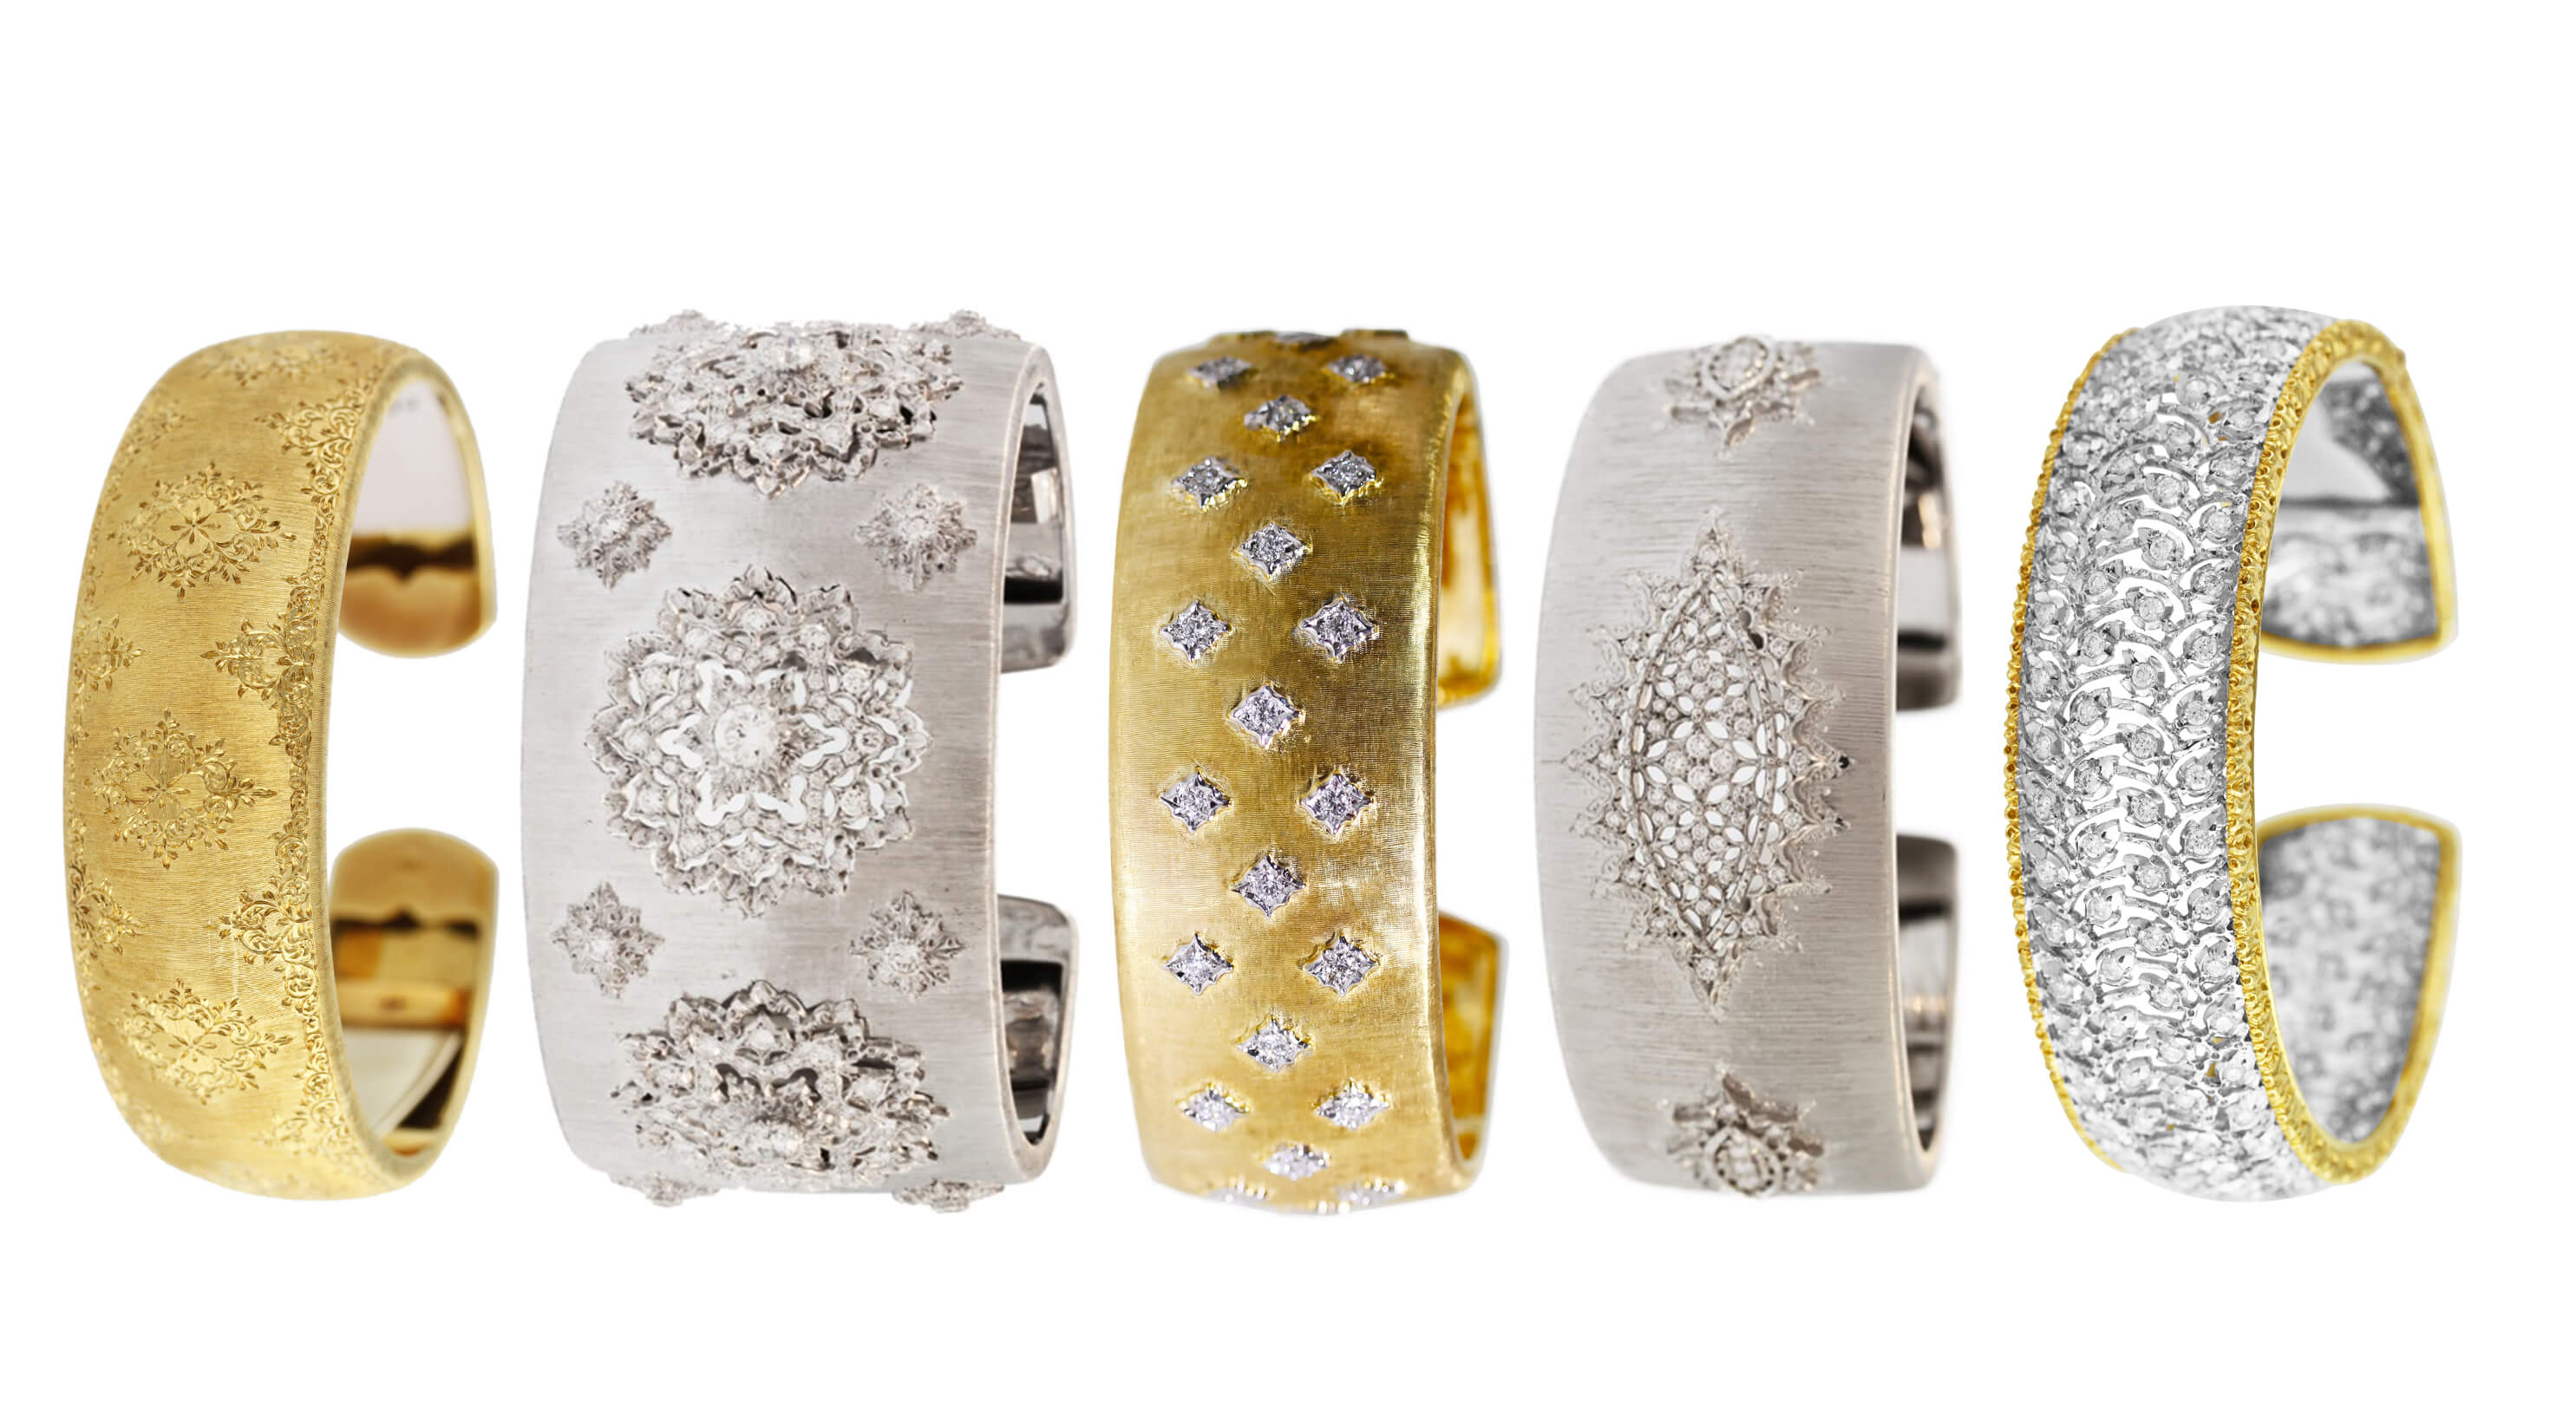 The Buccellati Cuff